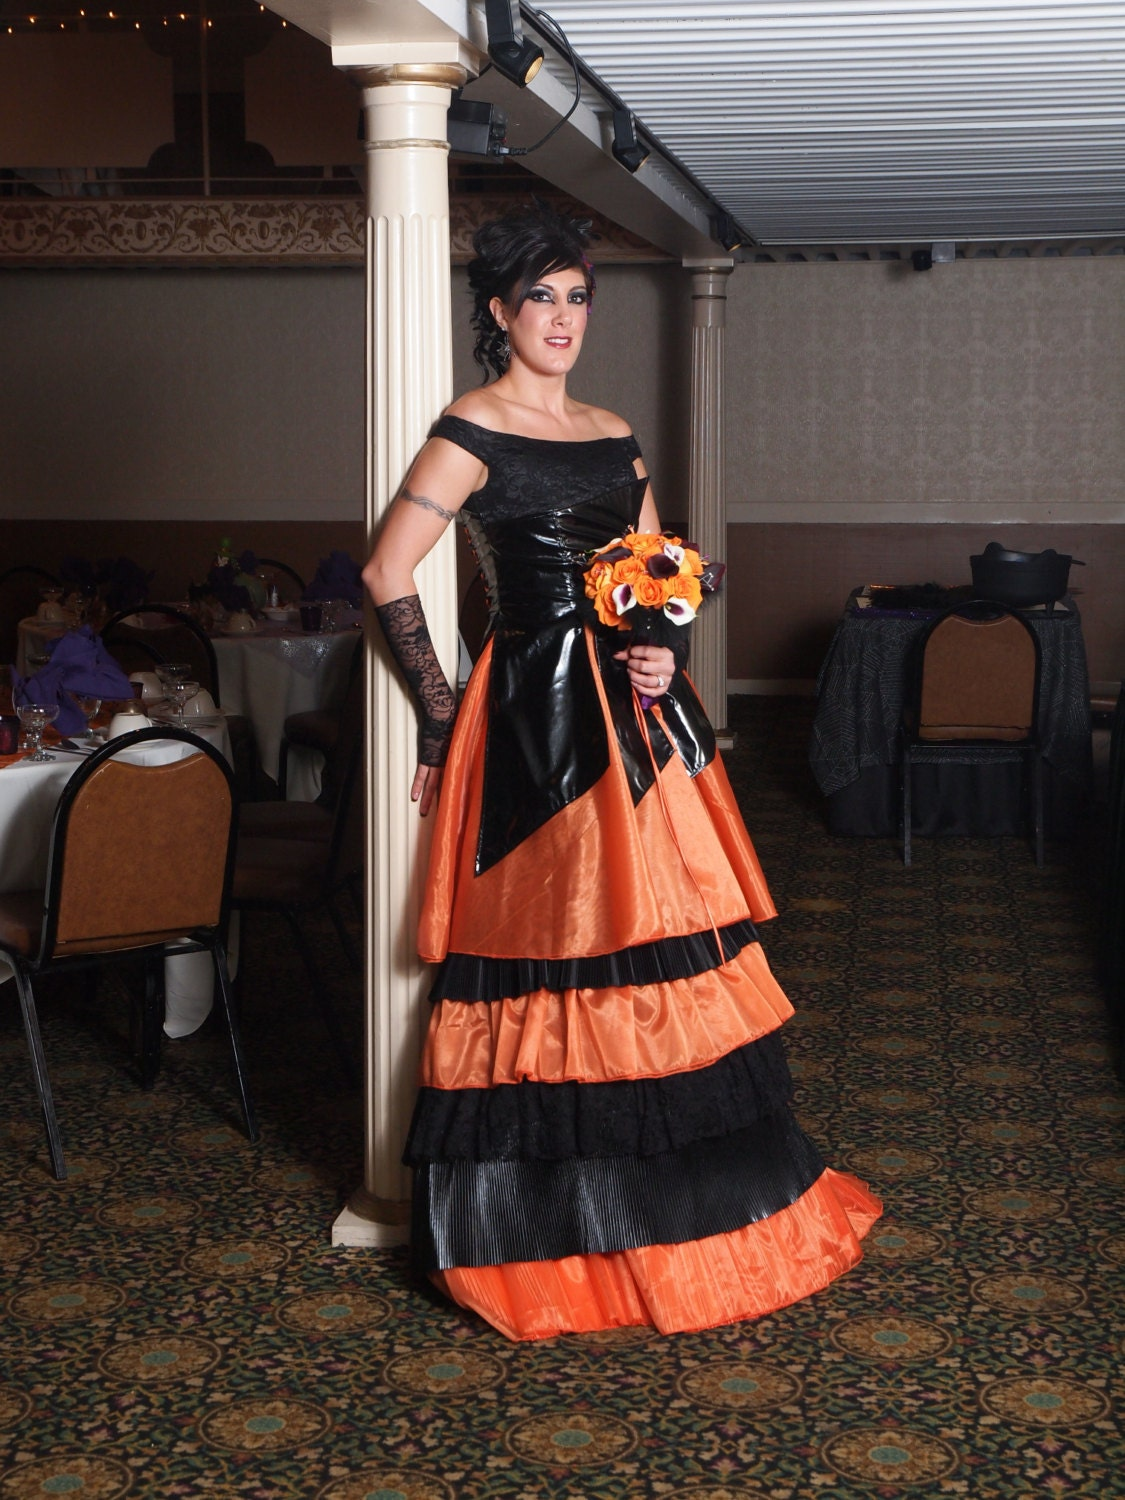 chandeliers pendant lights On black and orange wedding dresses